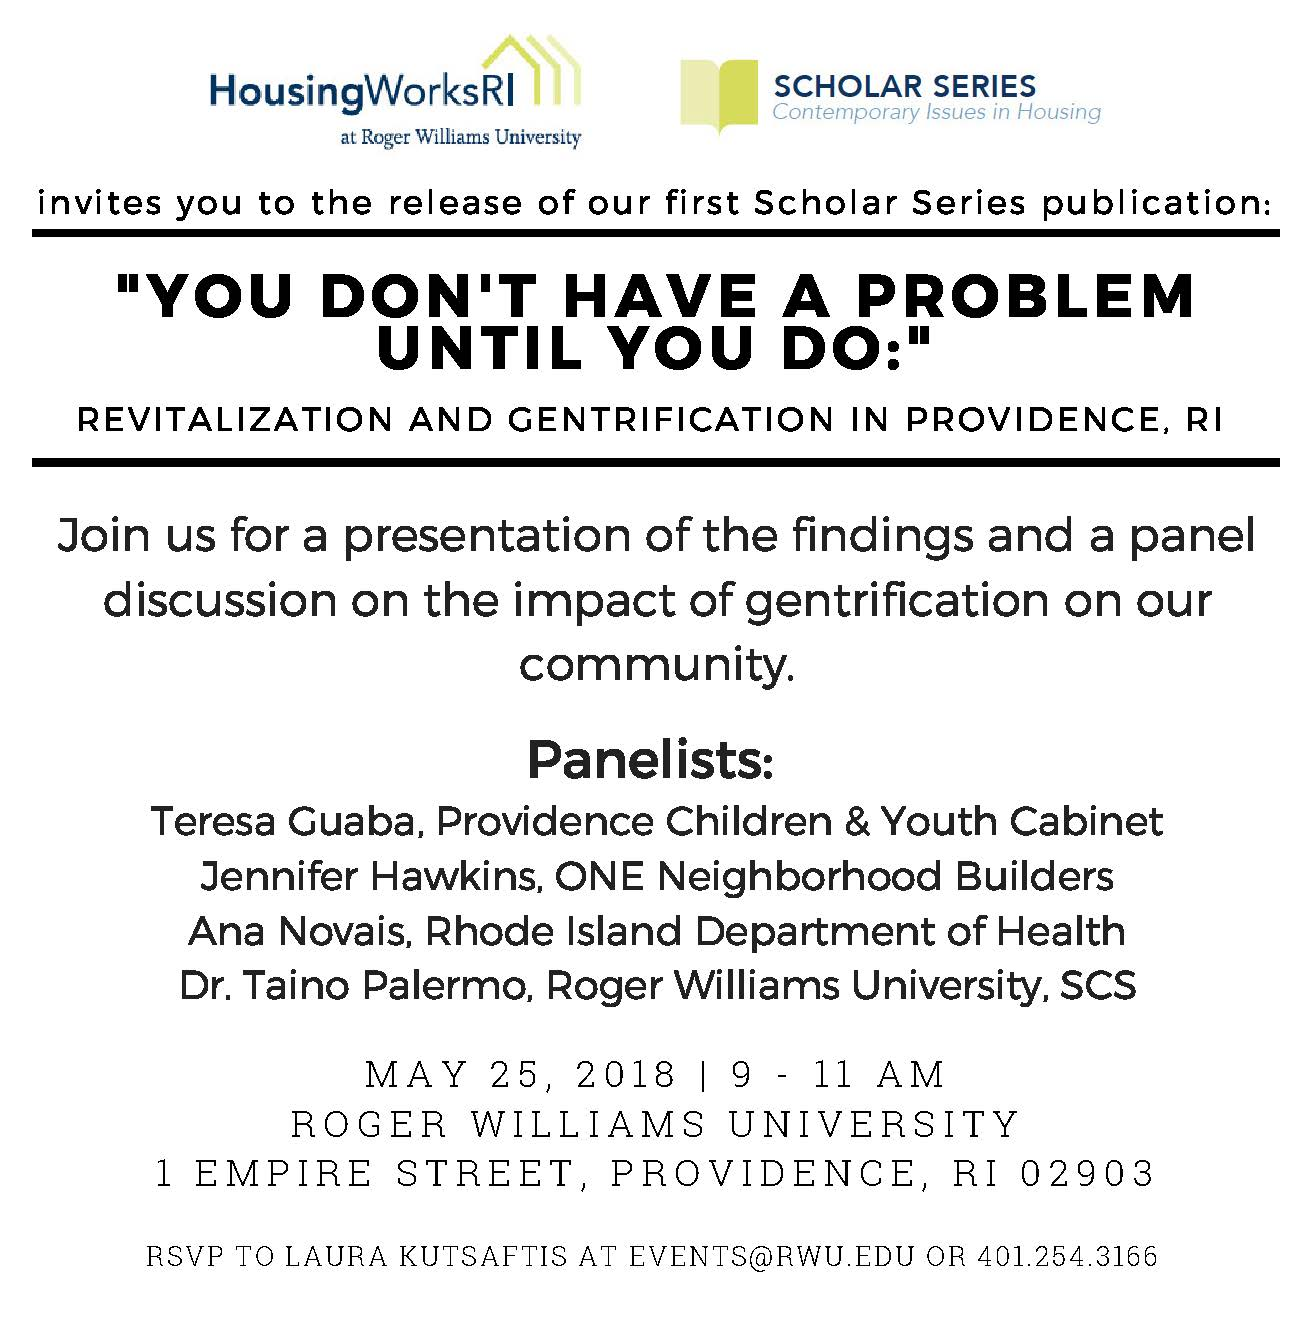 HWRI to Host Revitalization and Gentrification Forum on May 25th